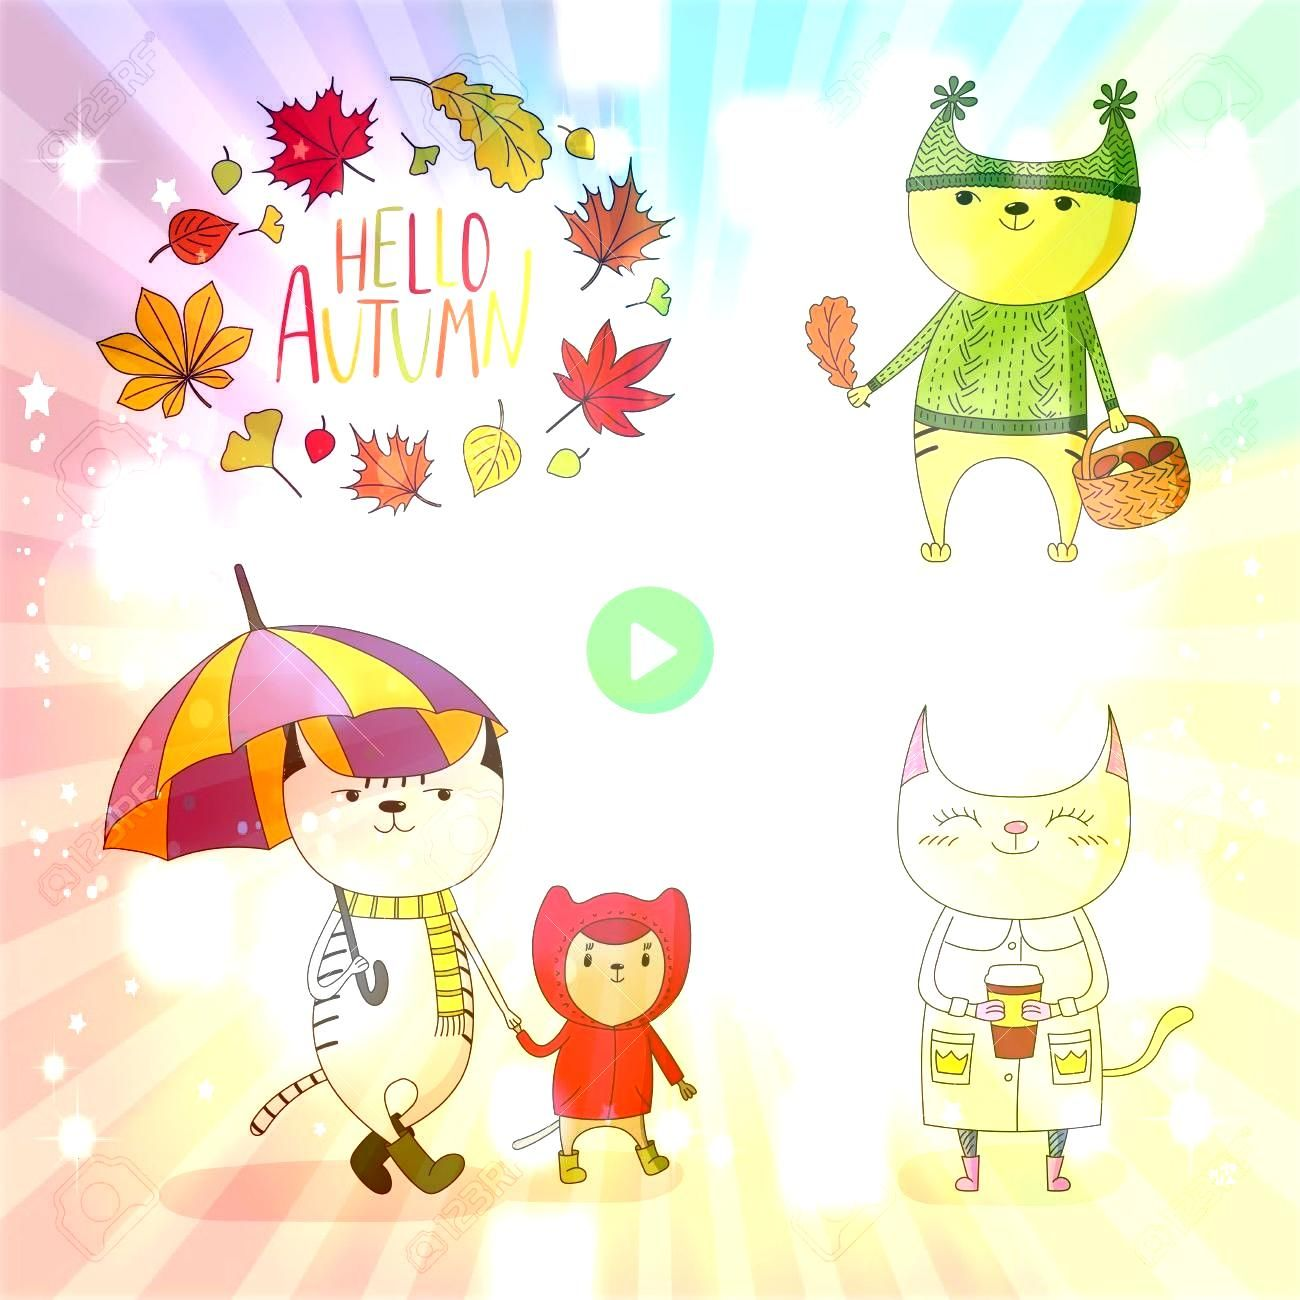 drawn vector illustration of cute cats in rain coat with umbrella mushrooms paper cup with wreath of leaves and text Hello Autumn Isolated objects on white background Des...